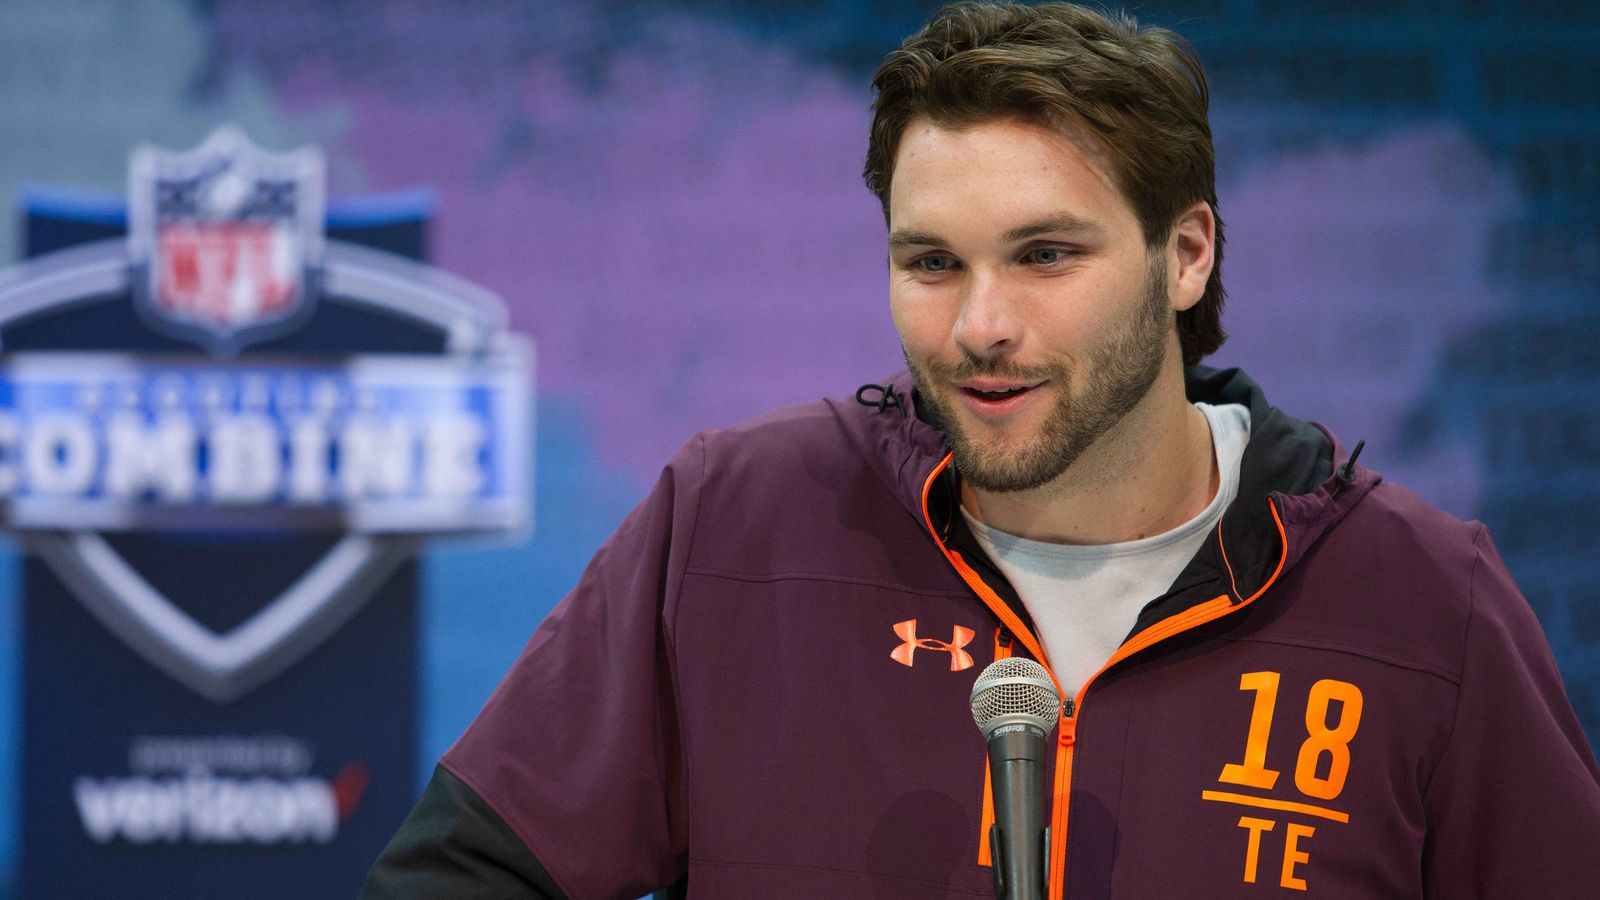 info for ec7cd 4ab0e 2019 NFL Draft scouting report: Buffalo Bills tight end ...